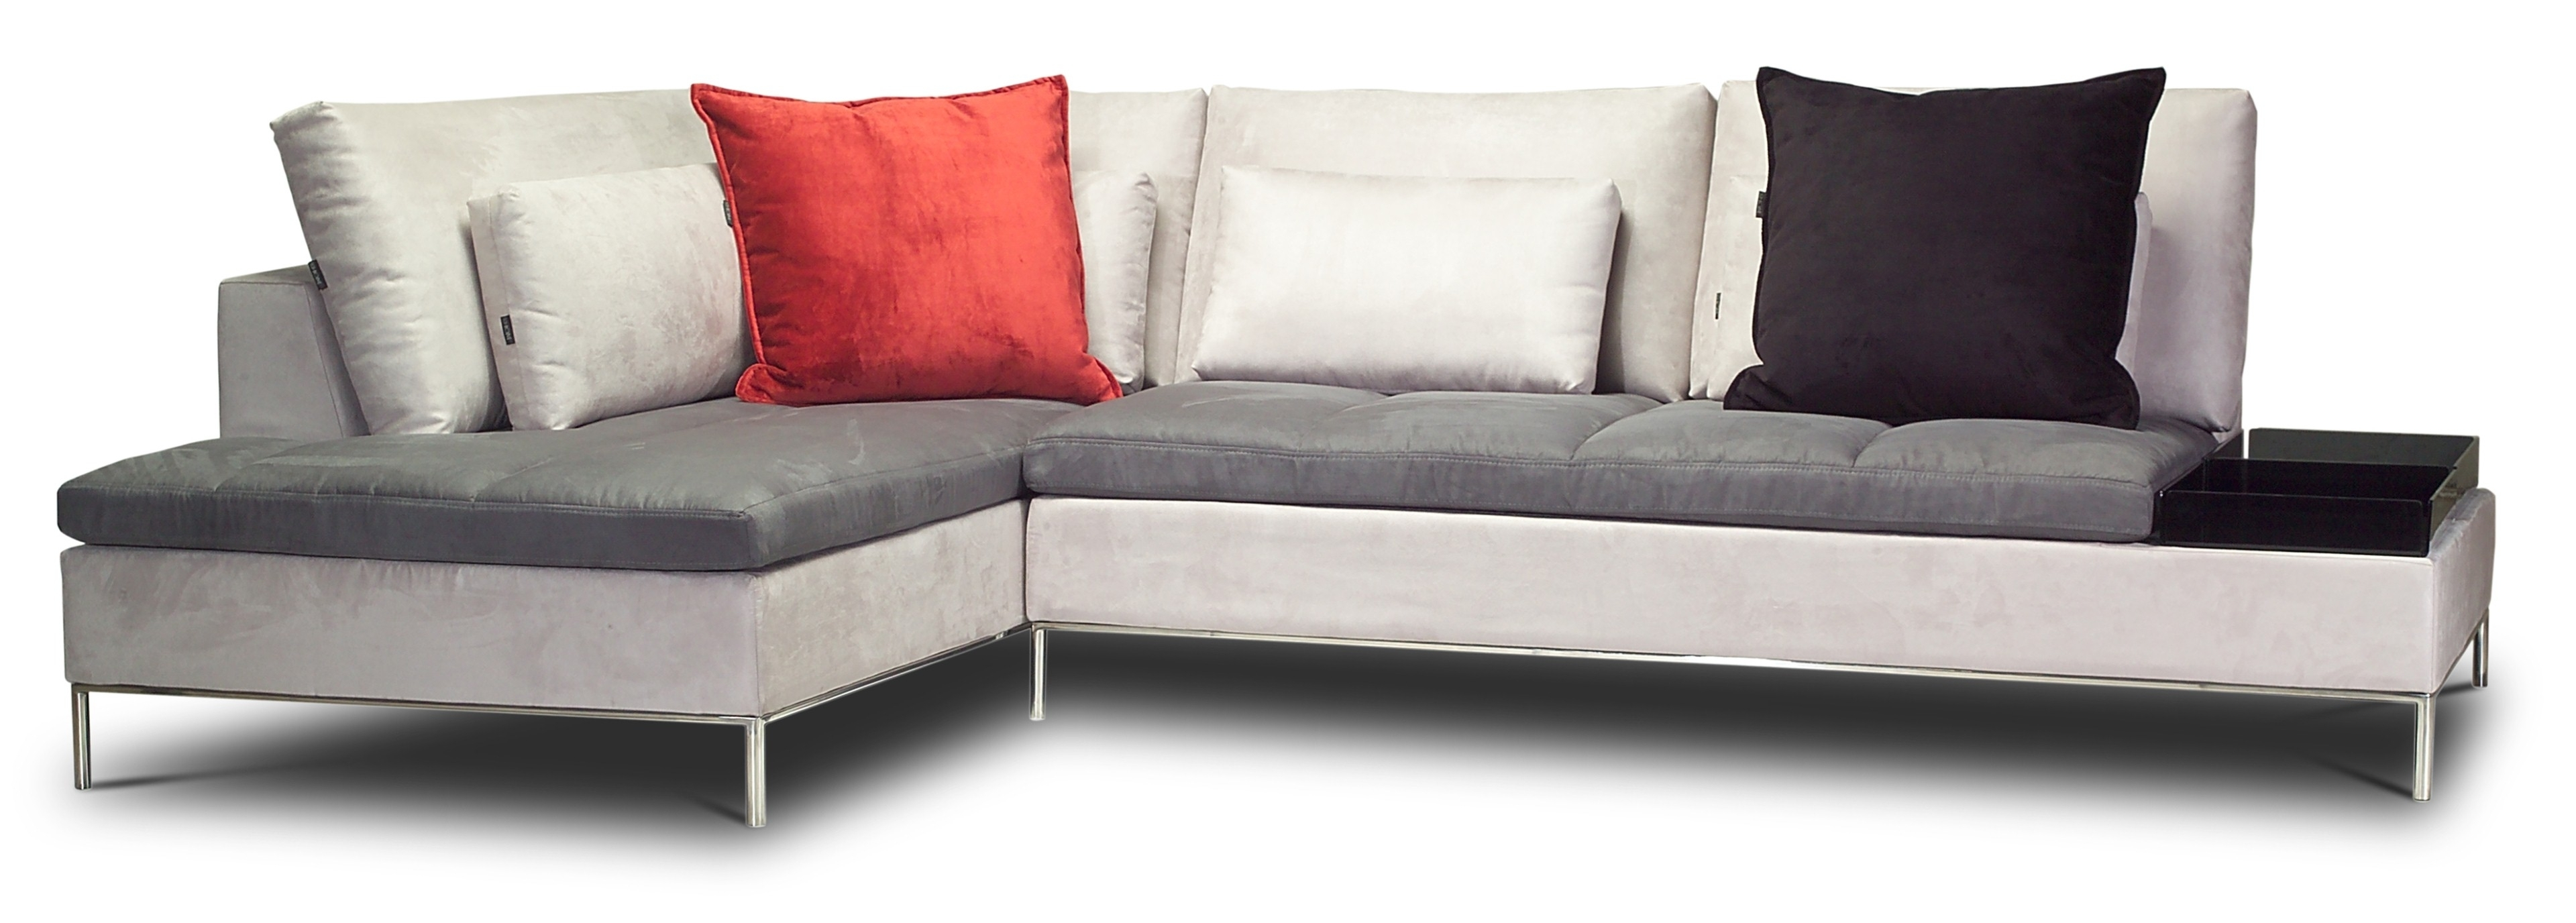 Jackknife Sectional Sofa Bed • Sofa Bed With Regard To Dallas Texas Sectional Sofas (Image 7 of 10)